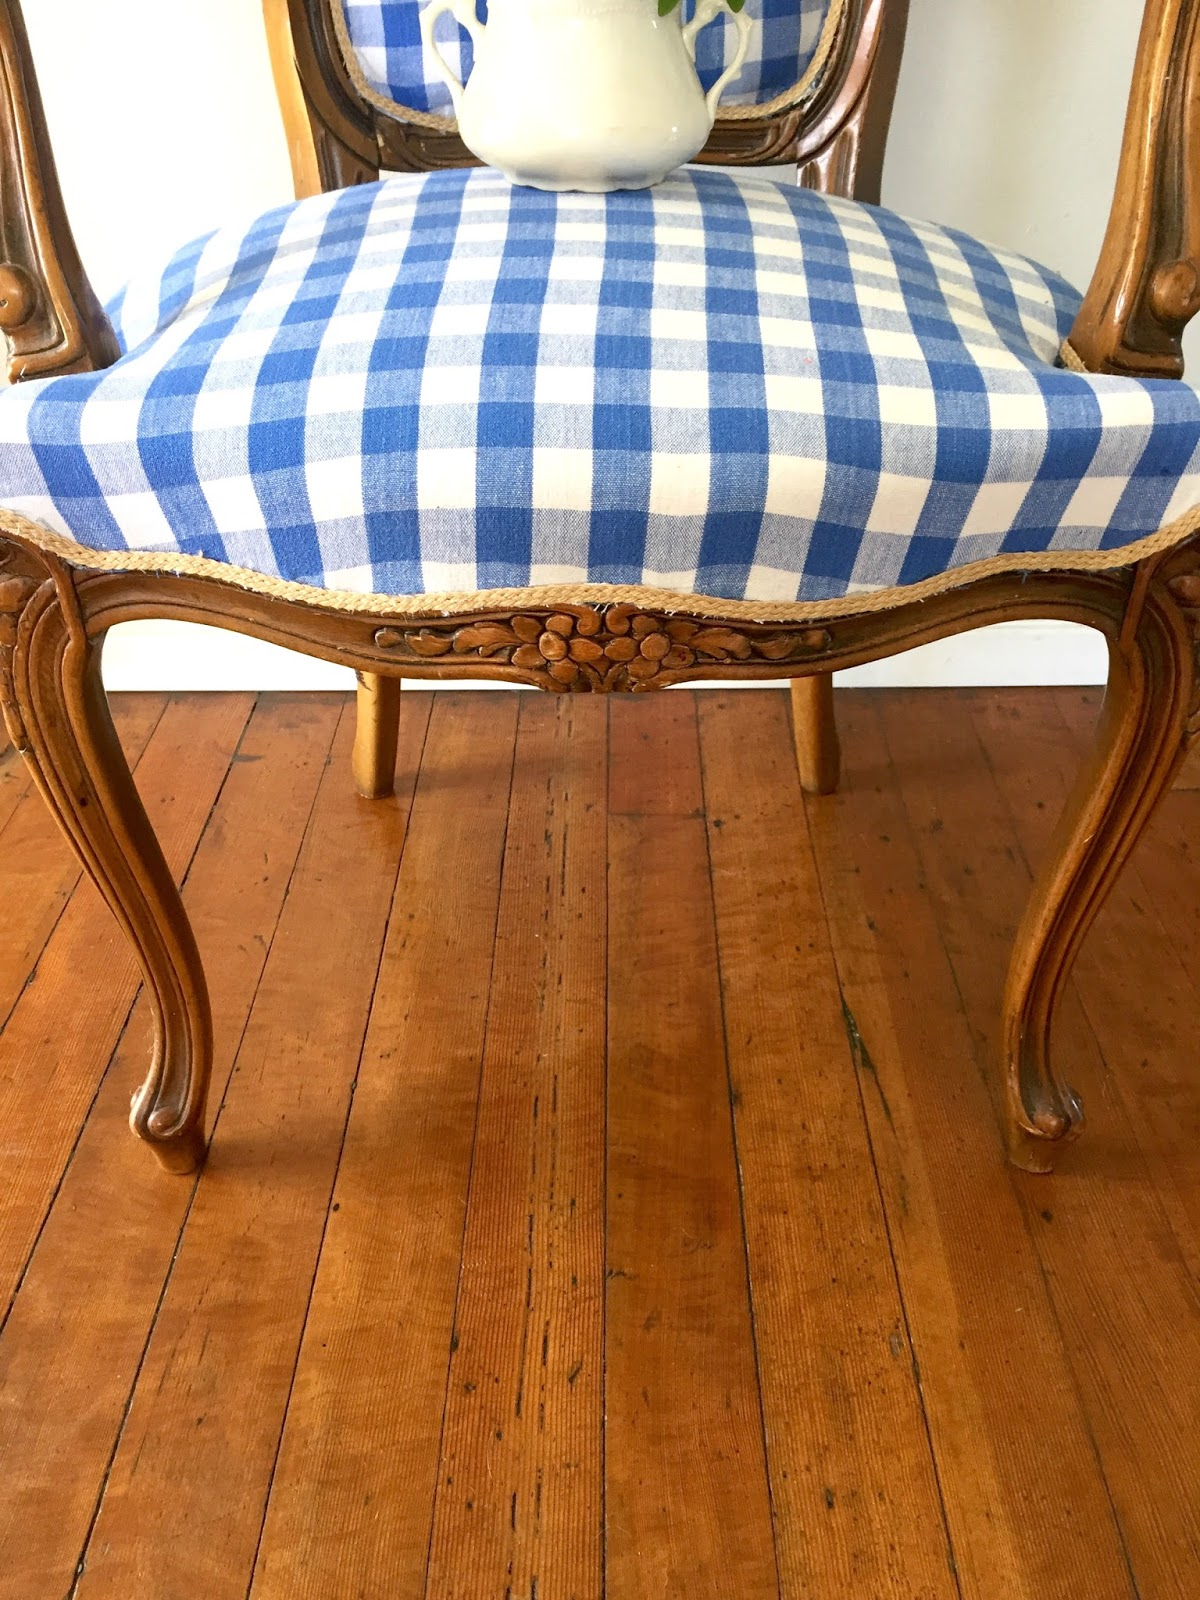 Buffalo Plaid Chair Chinese Chippendale Chairs Uk D 39s Cottage And Design Check